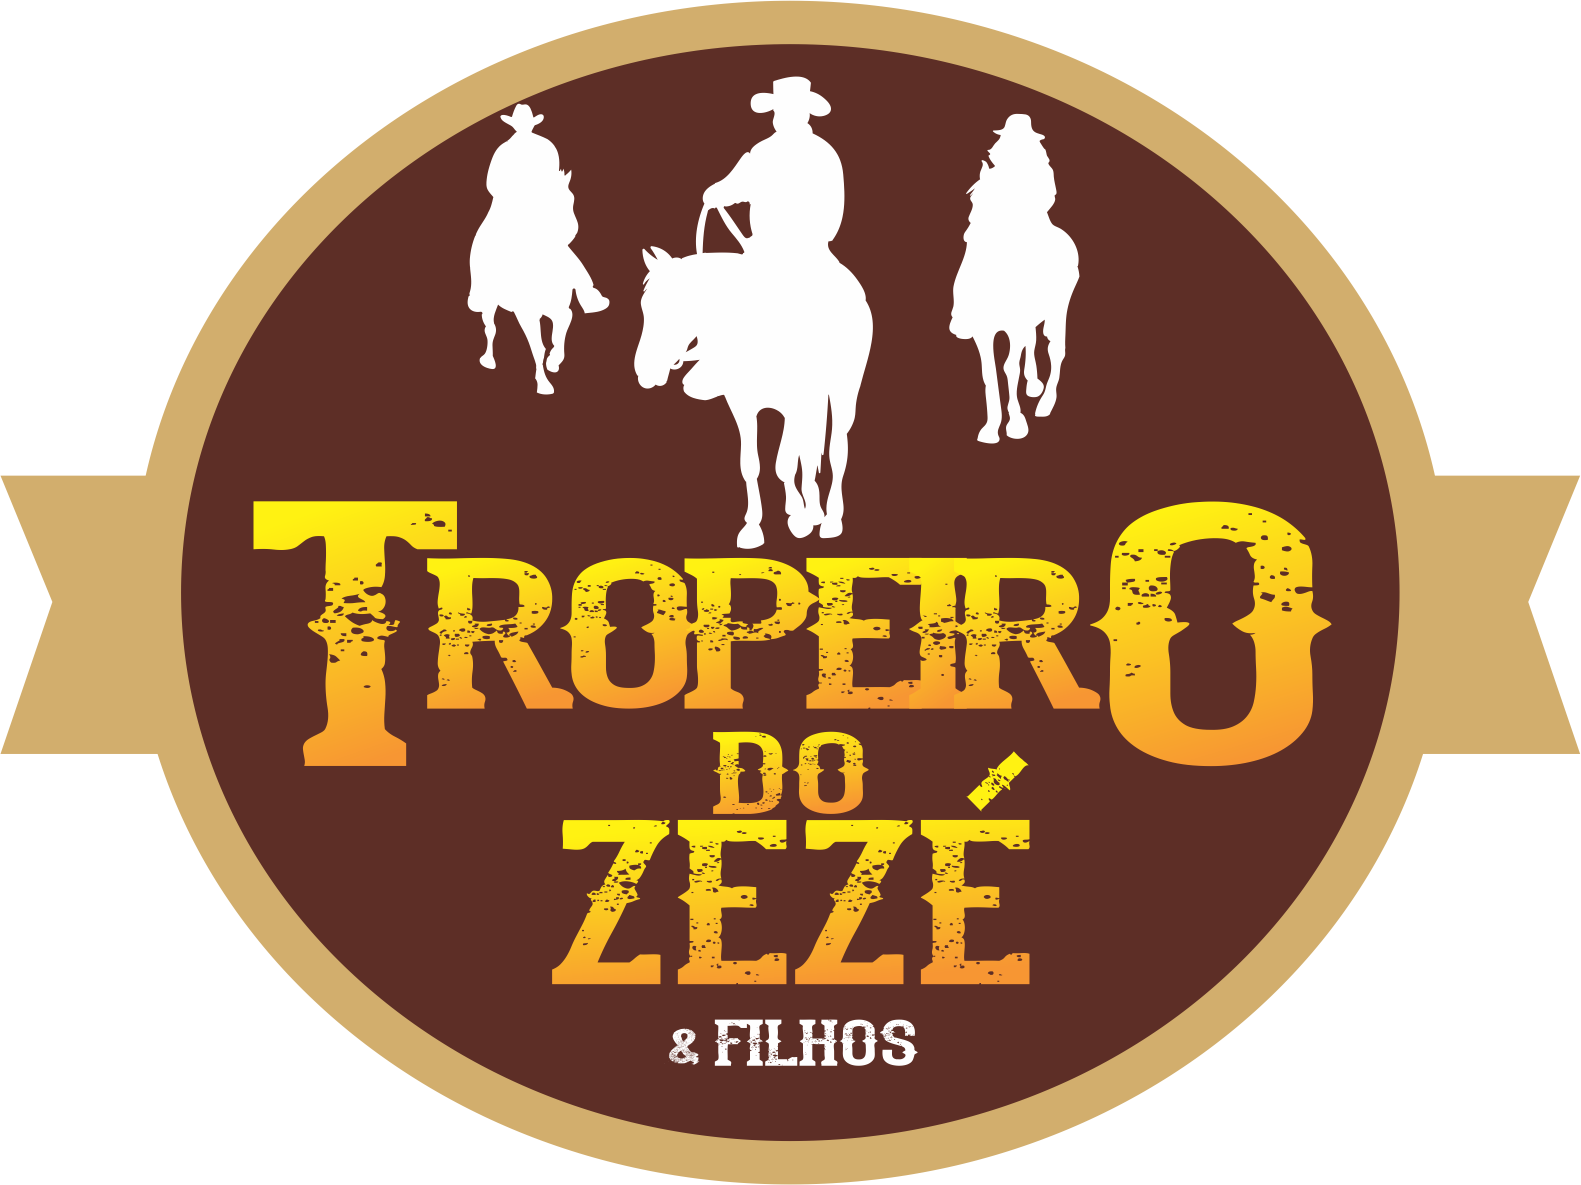 Tropeiro do Zezé